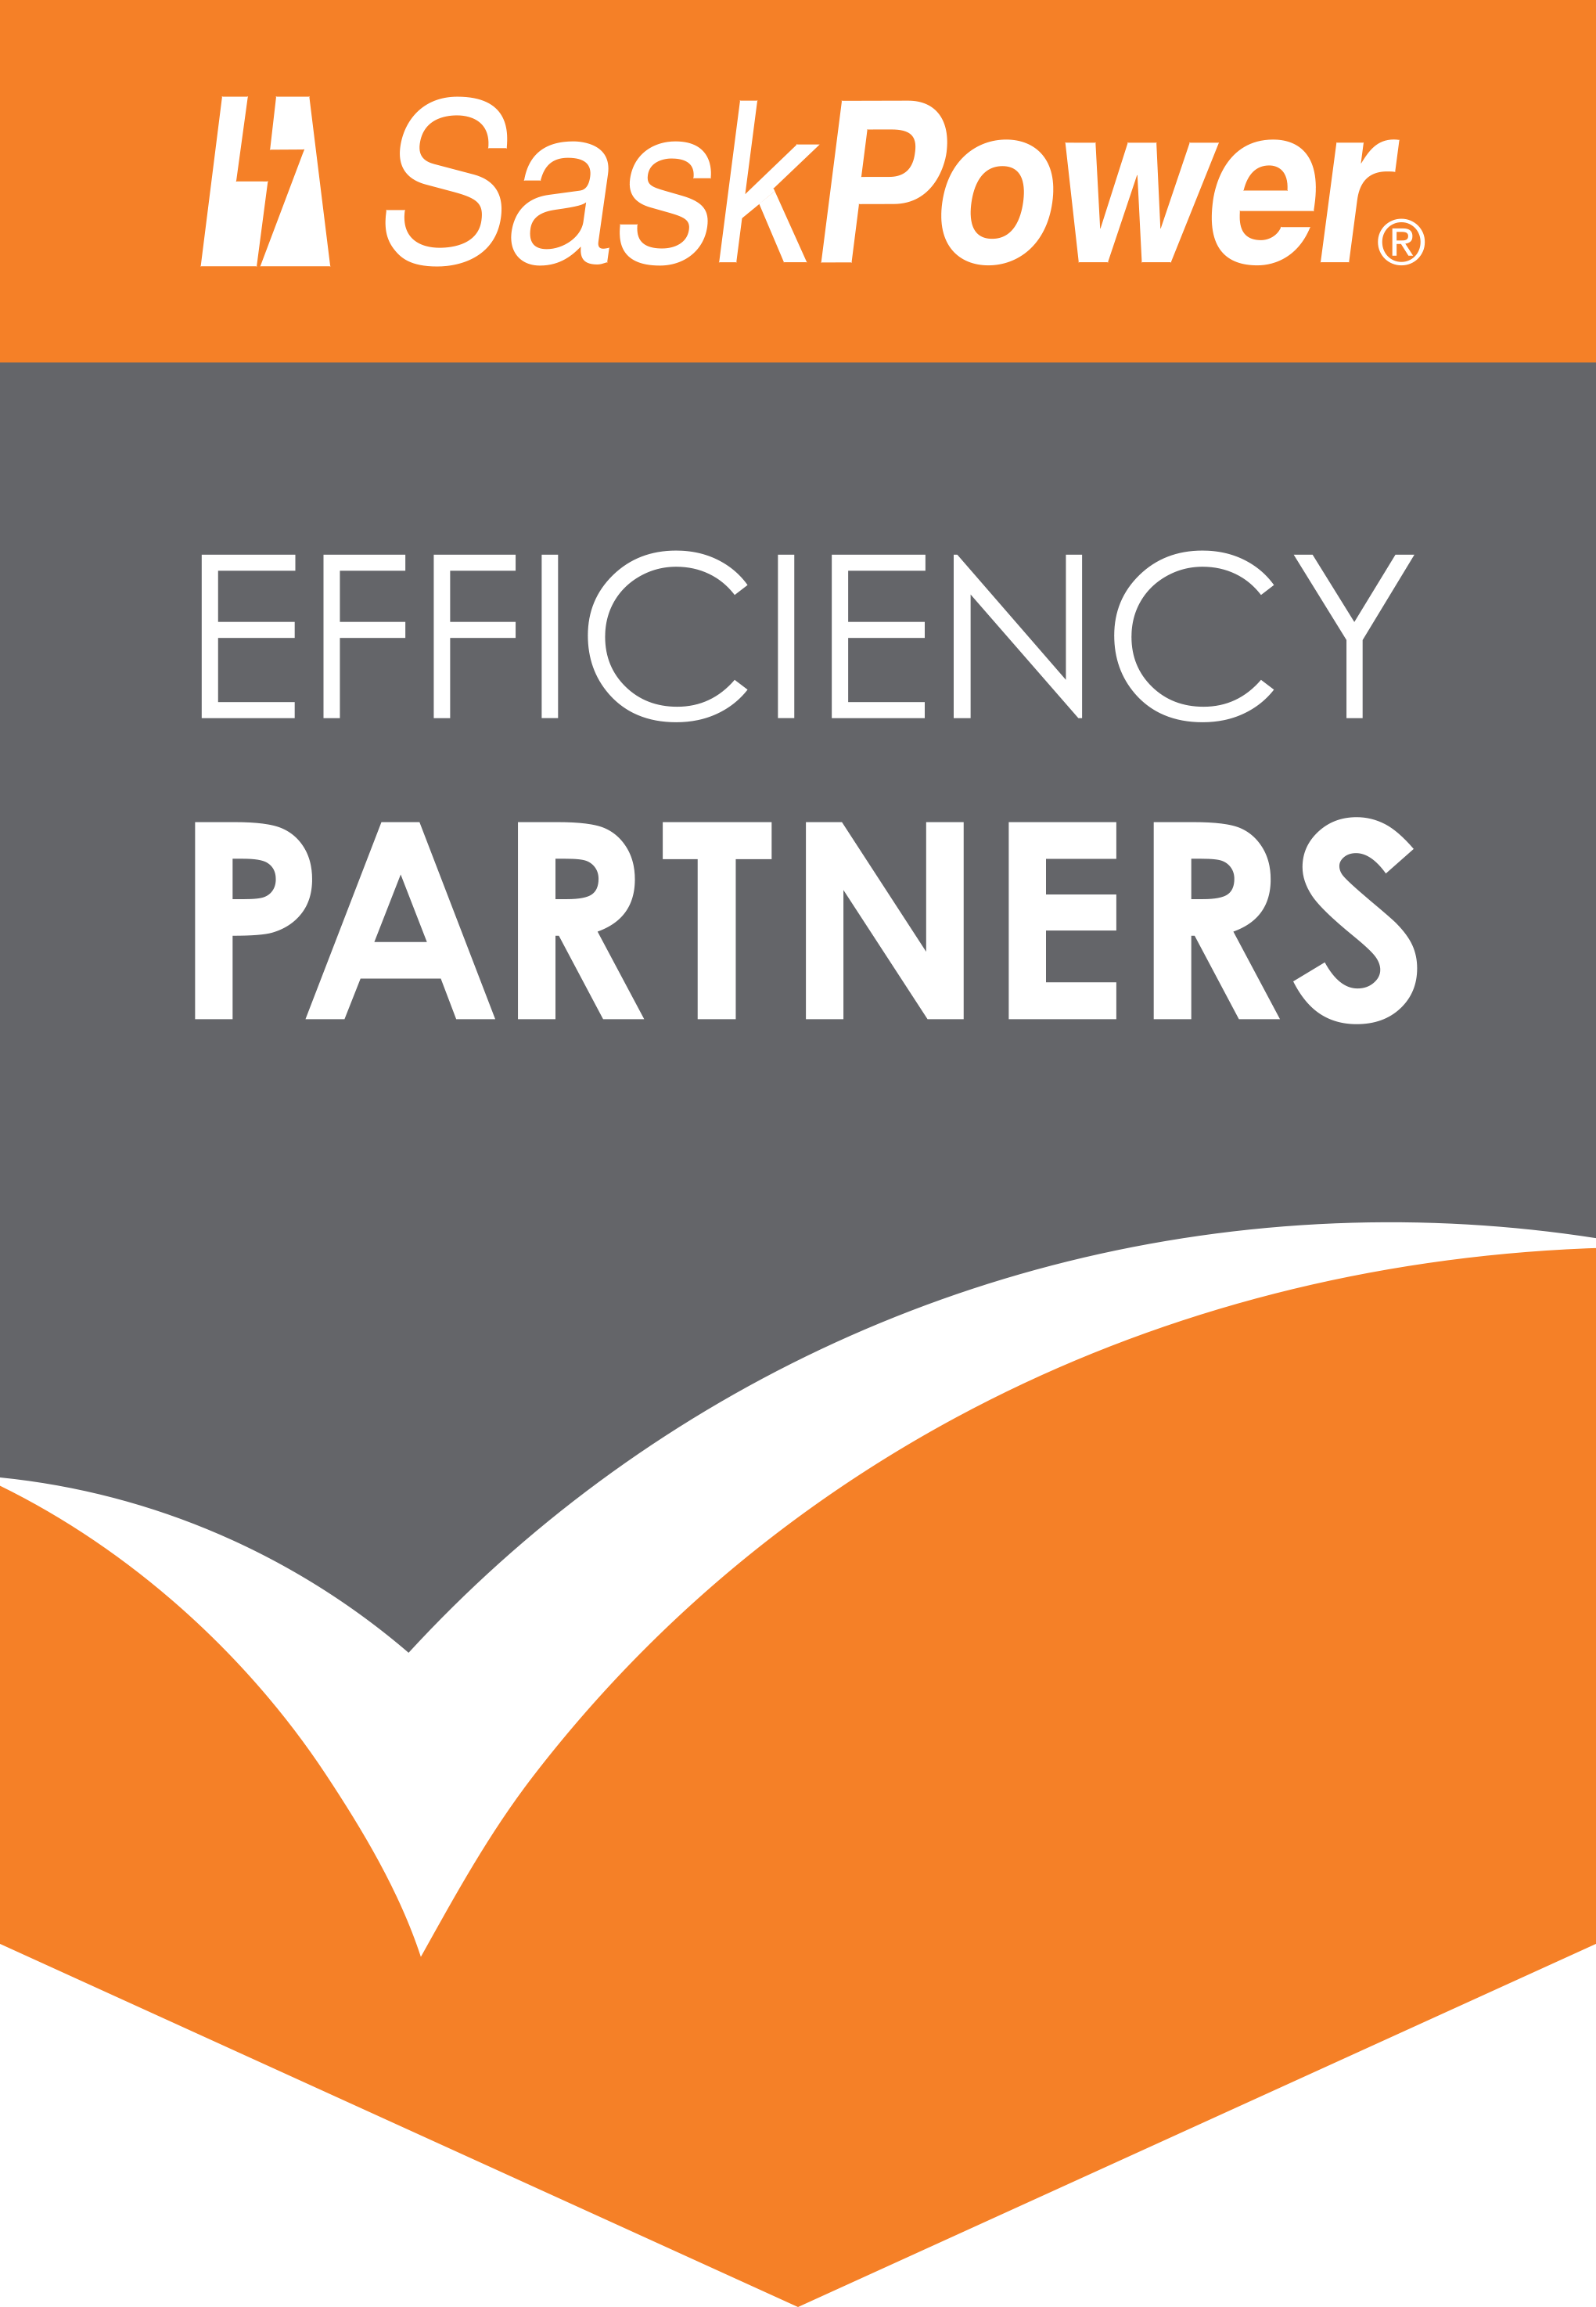 Orange_Grey_Efficiency_Partners.png